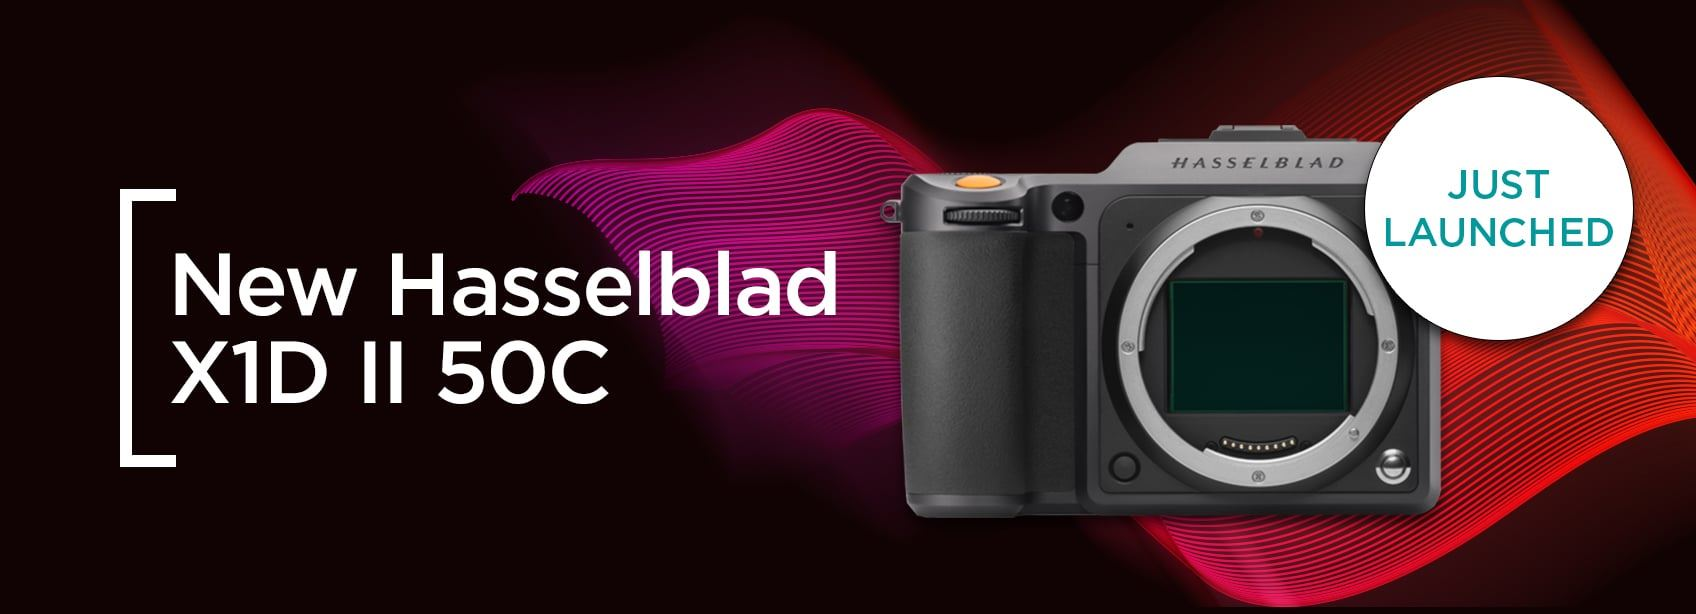 Hasselblad X1D II 50c - Just Launched